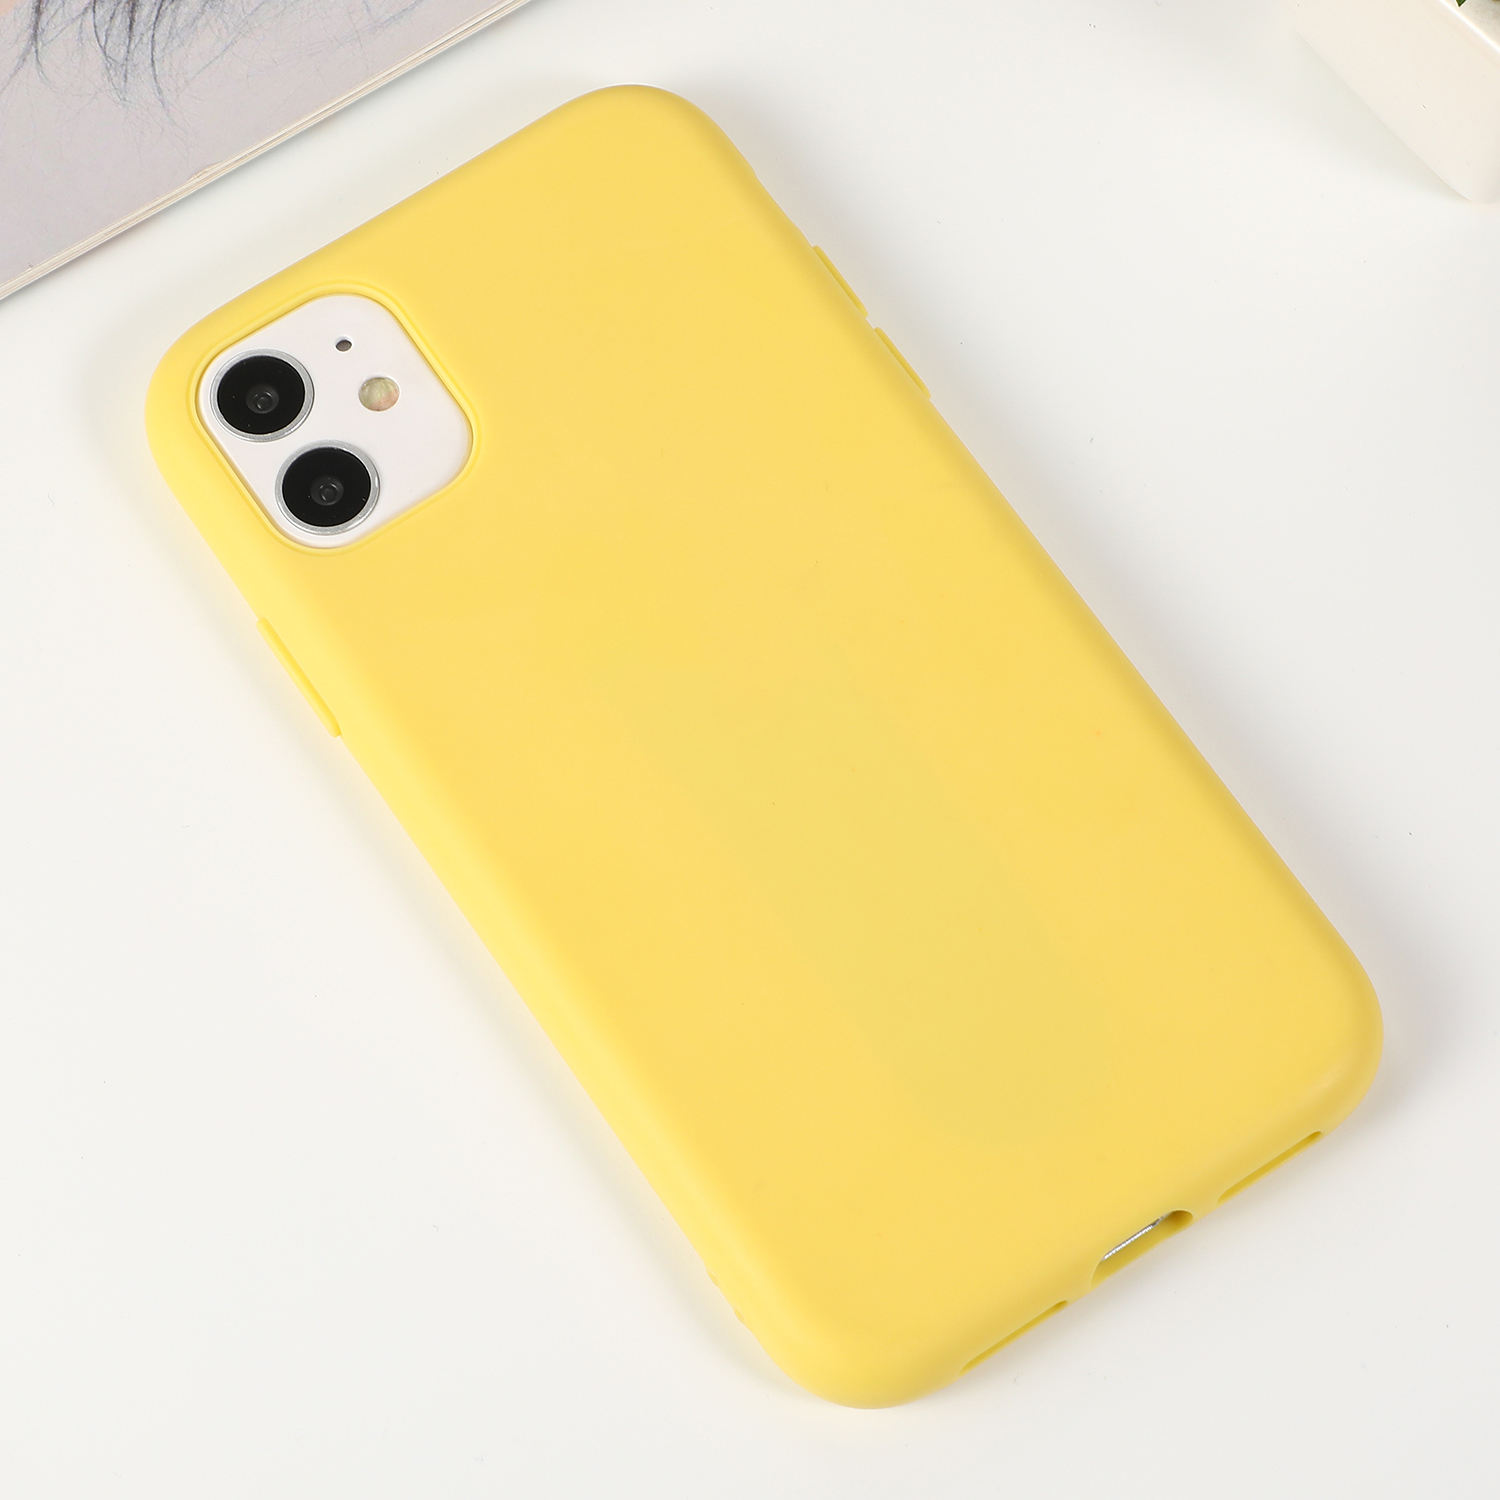 Ready To Ship TPU Soft Phone Shell Case For iPhone 6s plus 7/8 plus x xs max xr 11 pro max